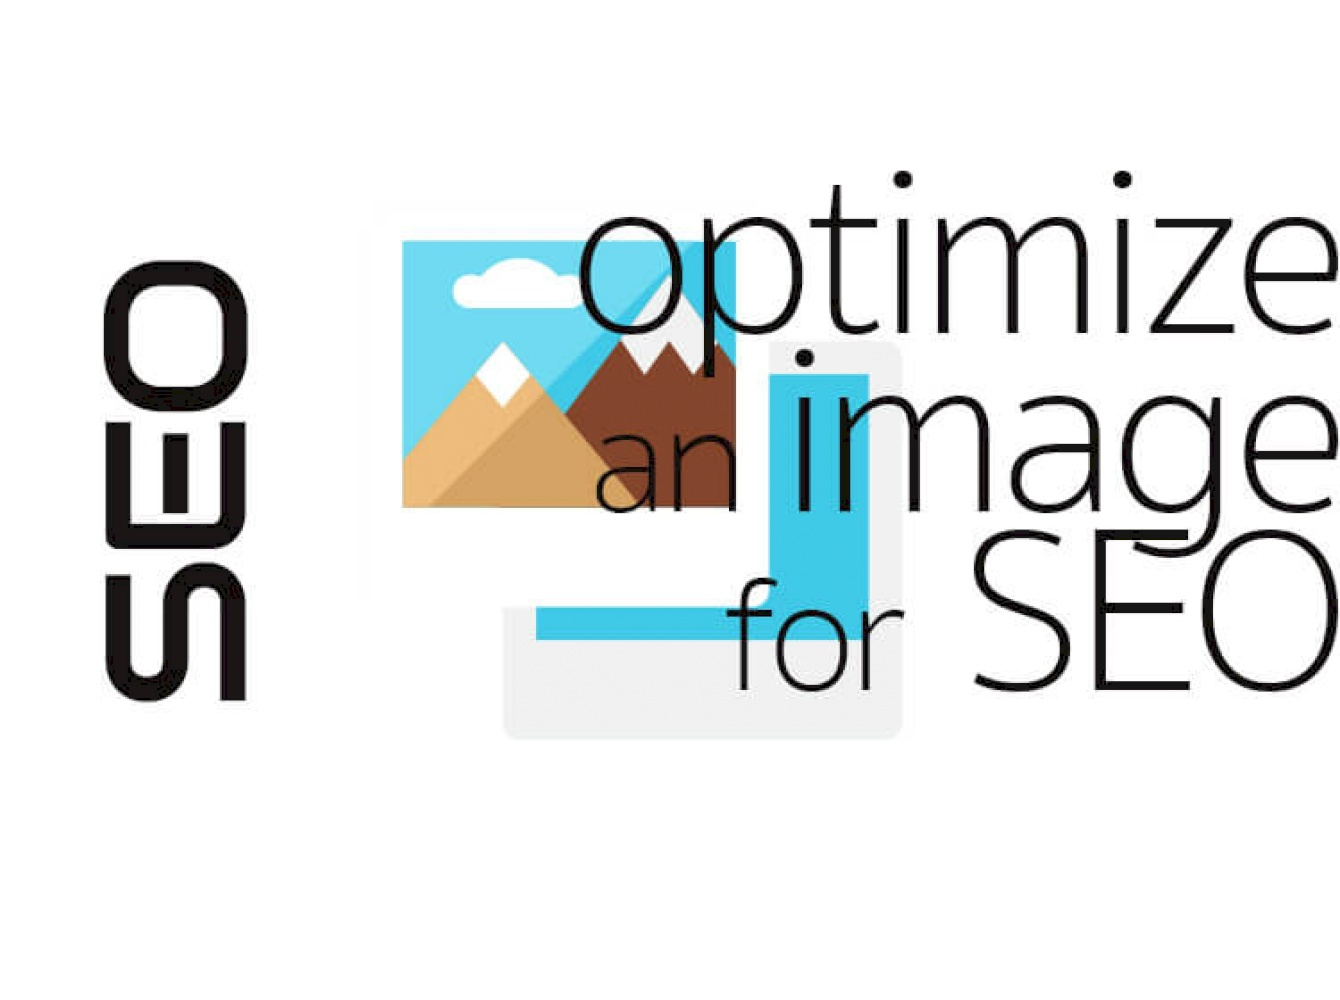 SEO Images: Products image file and alt